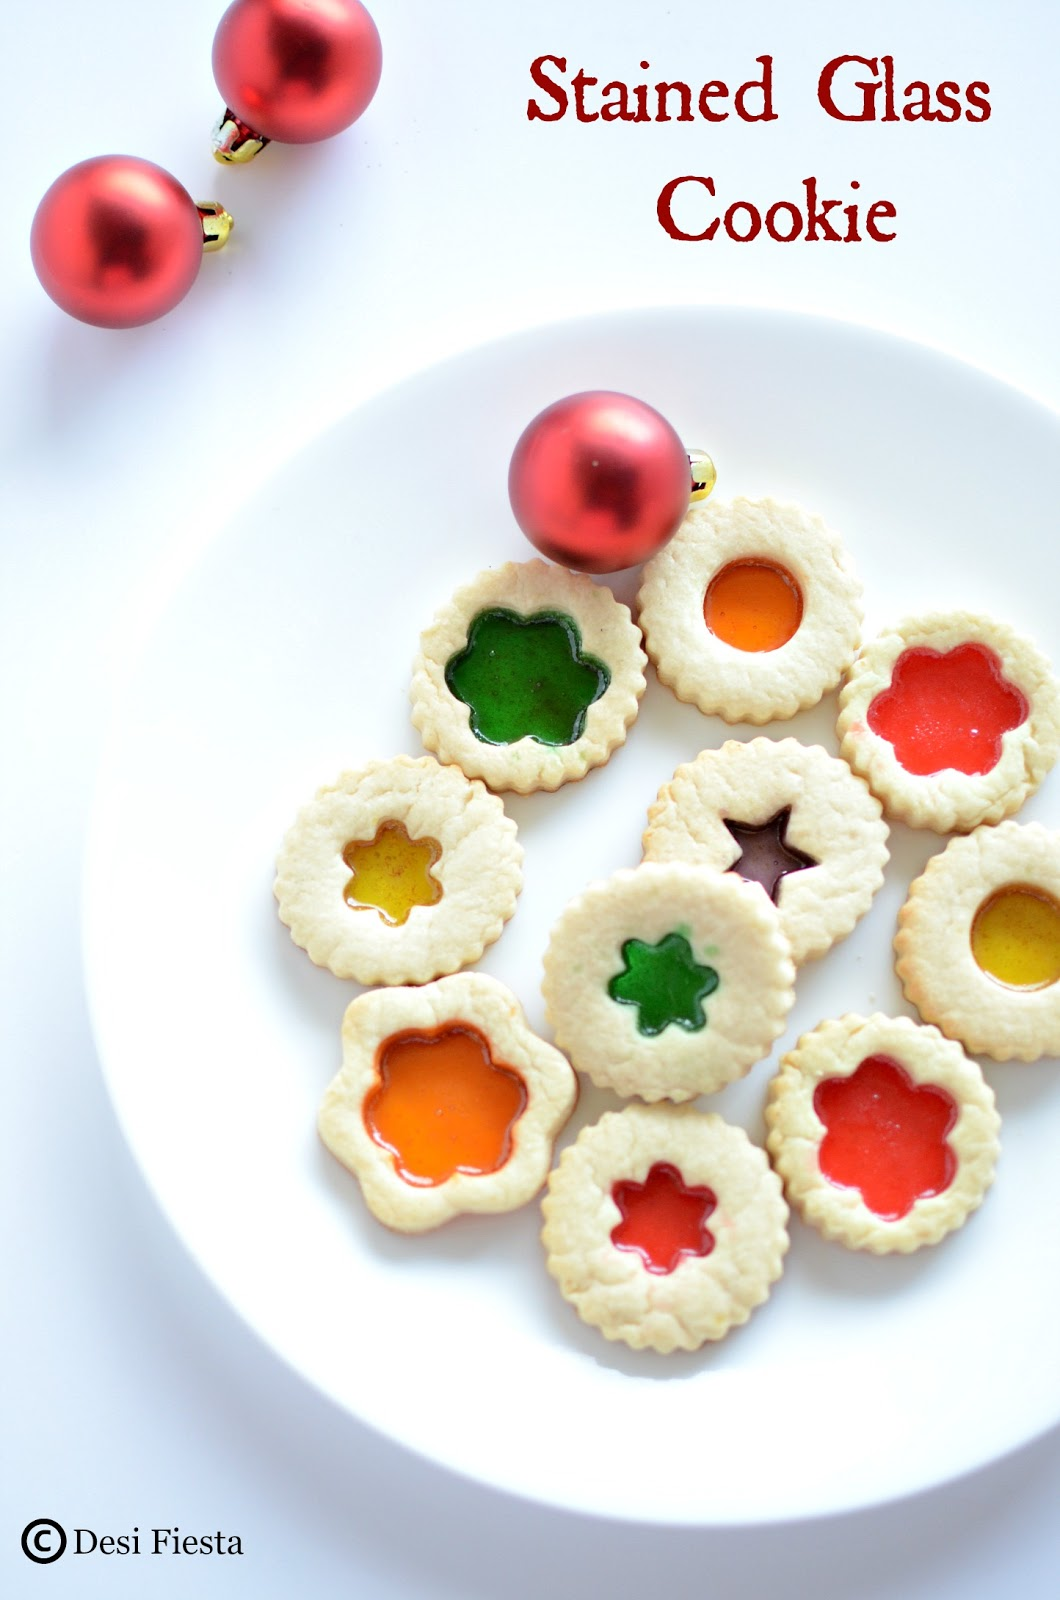 Desi Fiesta : Stained Glass Cookie | Stained Glasses Cookies Recipe